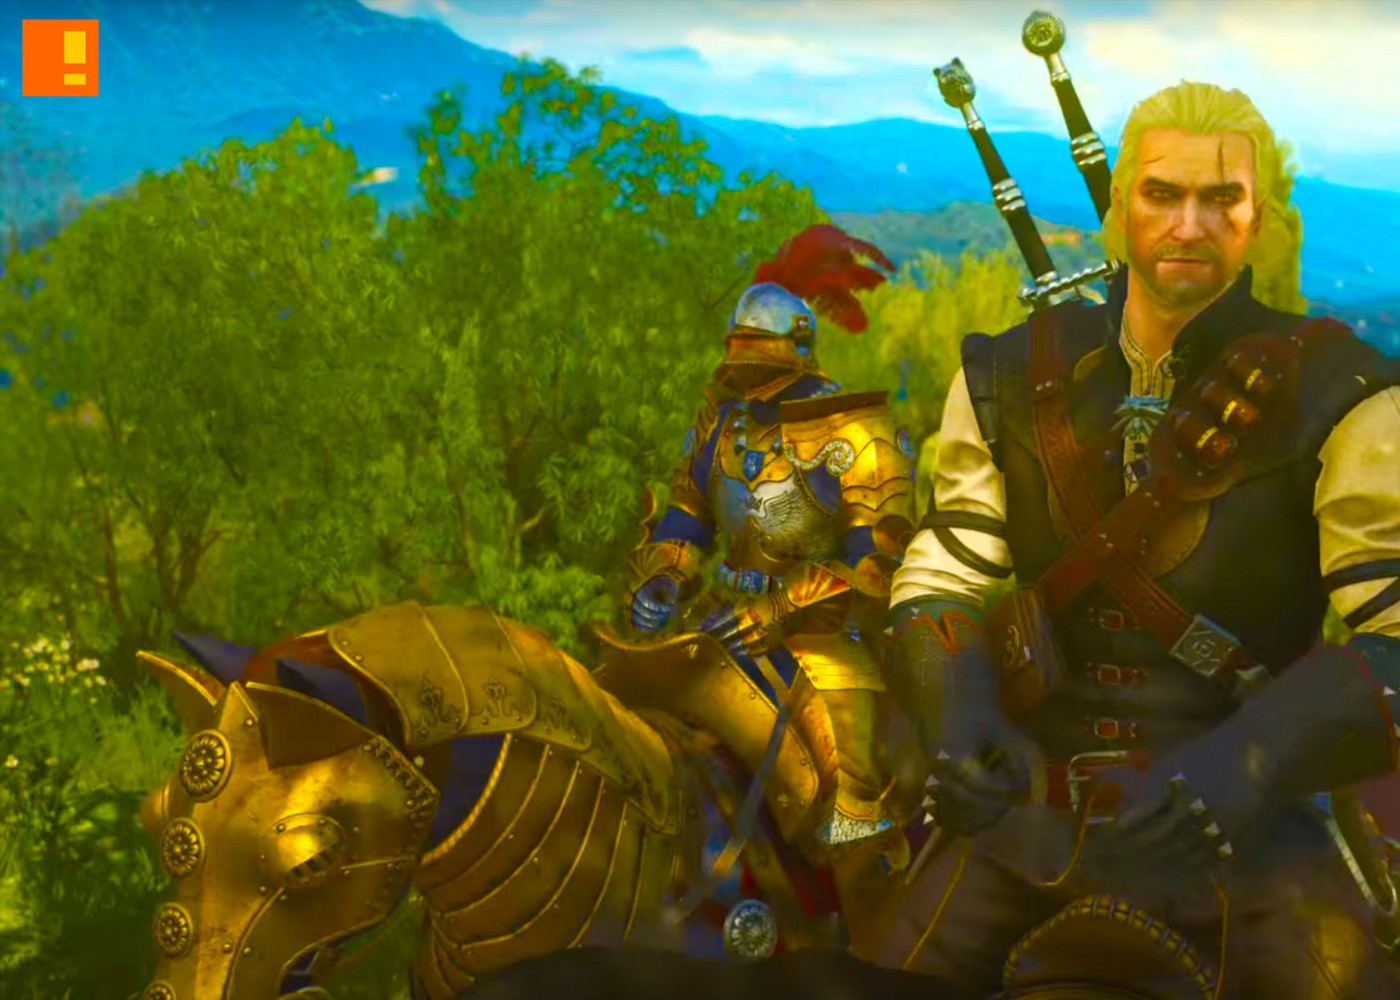 the witcher 3, the witcher, blood and wine, dlc, launch trailer,toussaint, geralt , geralt of rivia, dlc, the action pixel, entertainment on tap